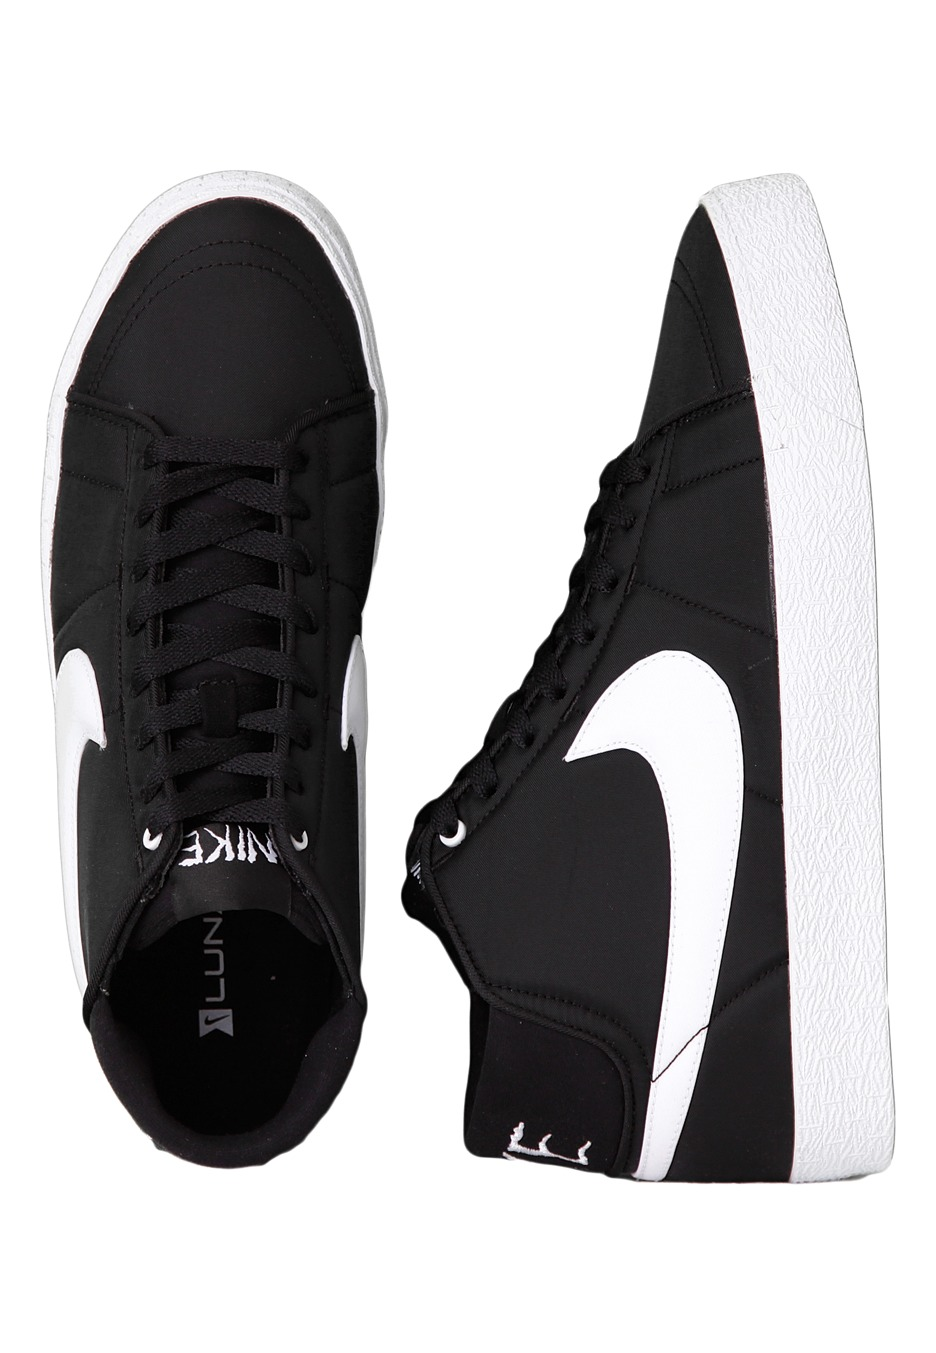 nike blazer mid lr nf black white shoes impericon uk